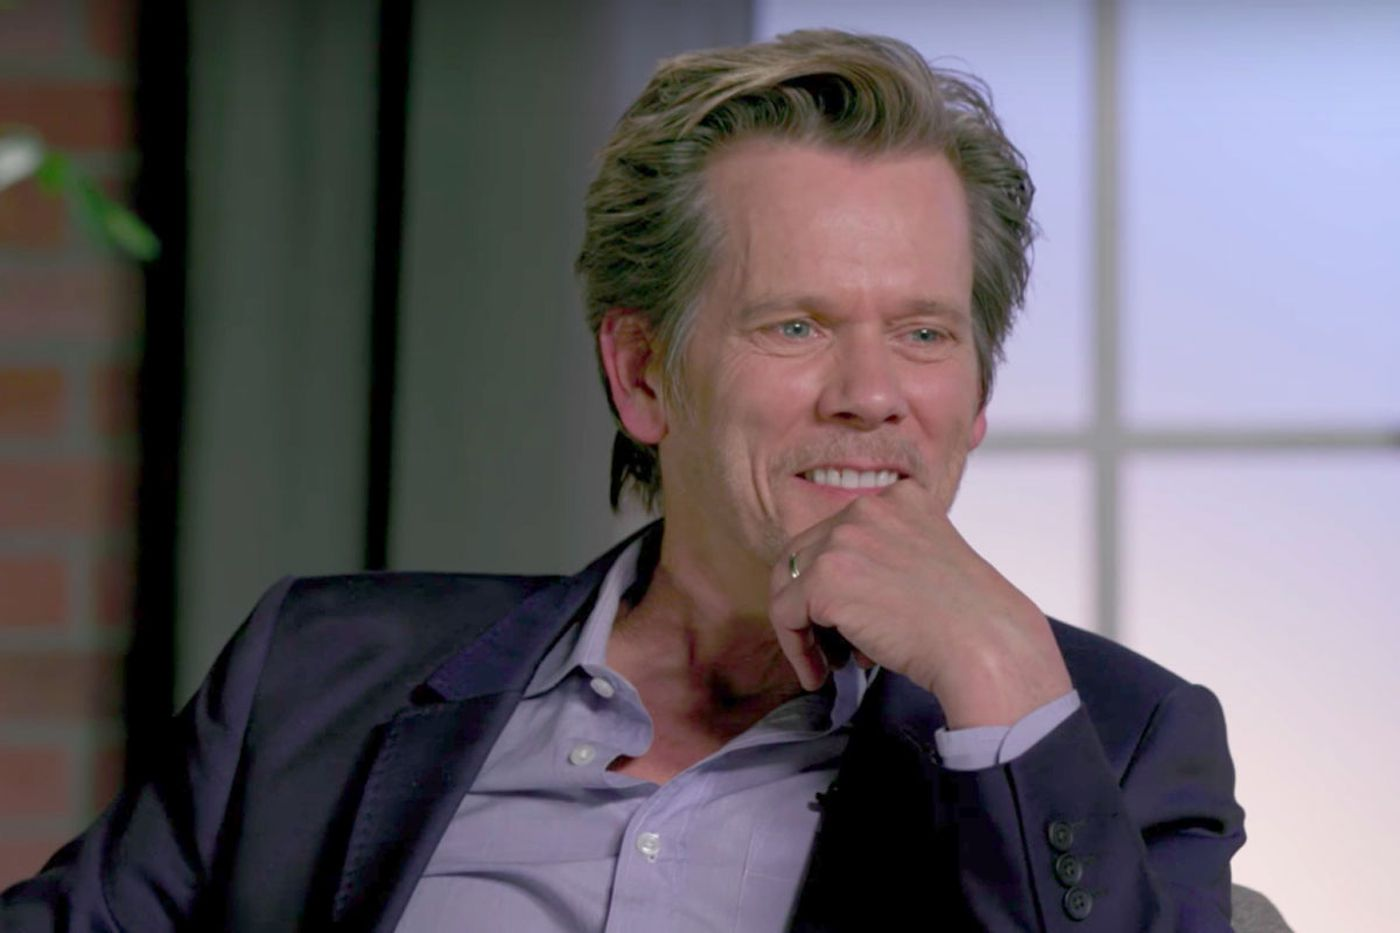 Kevin Bacon went incognito as high school student for 'Footloose' prep